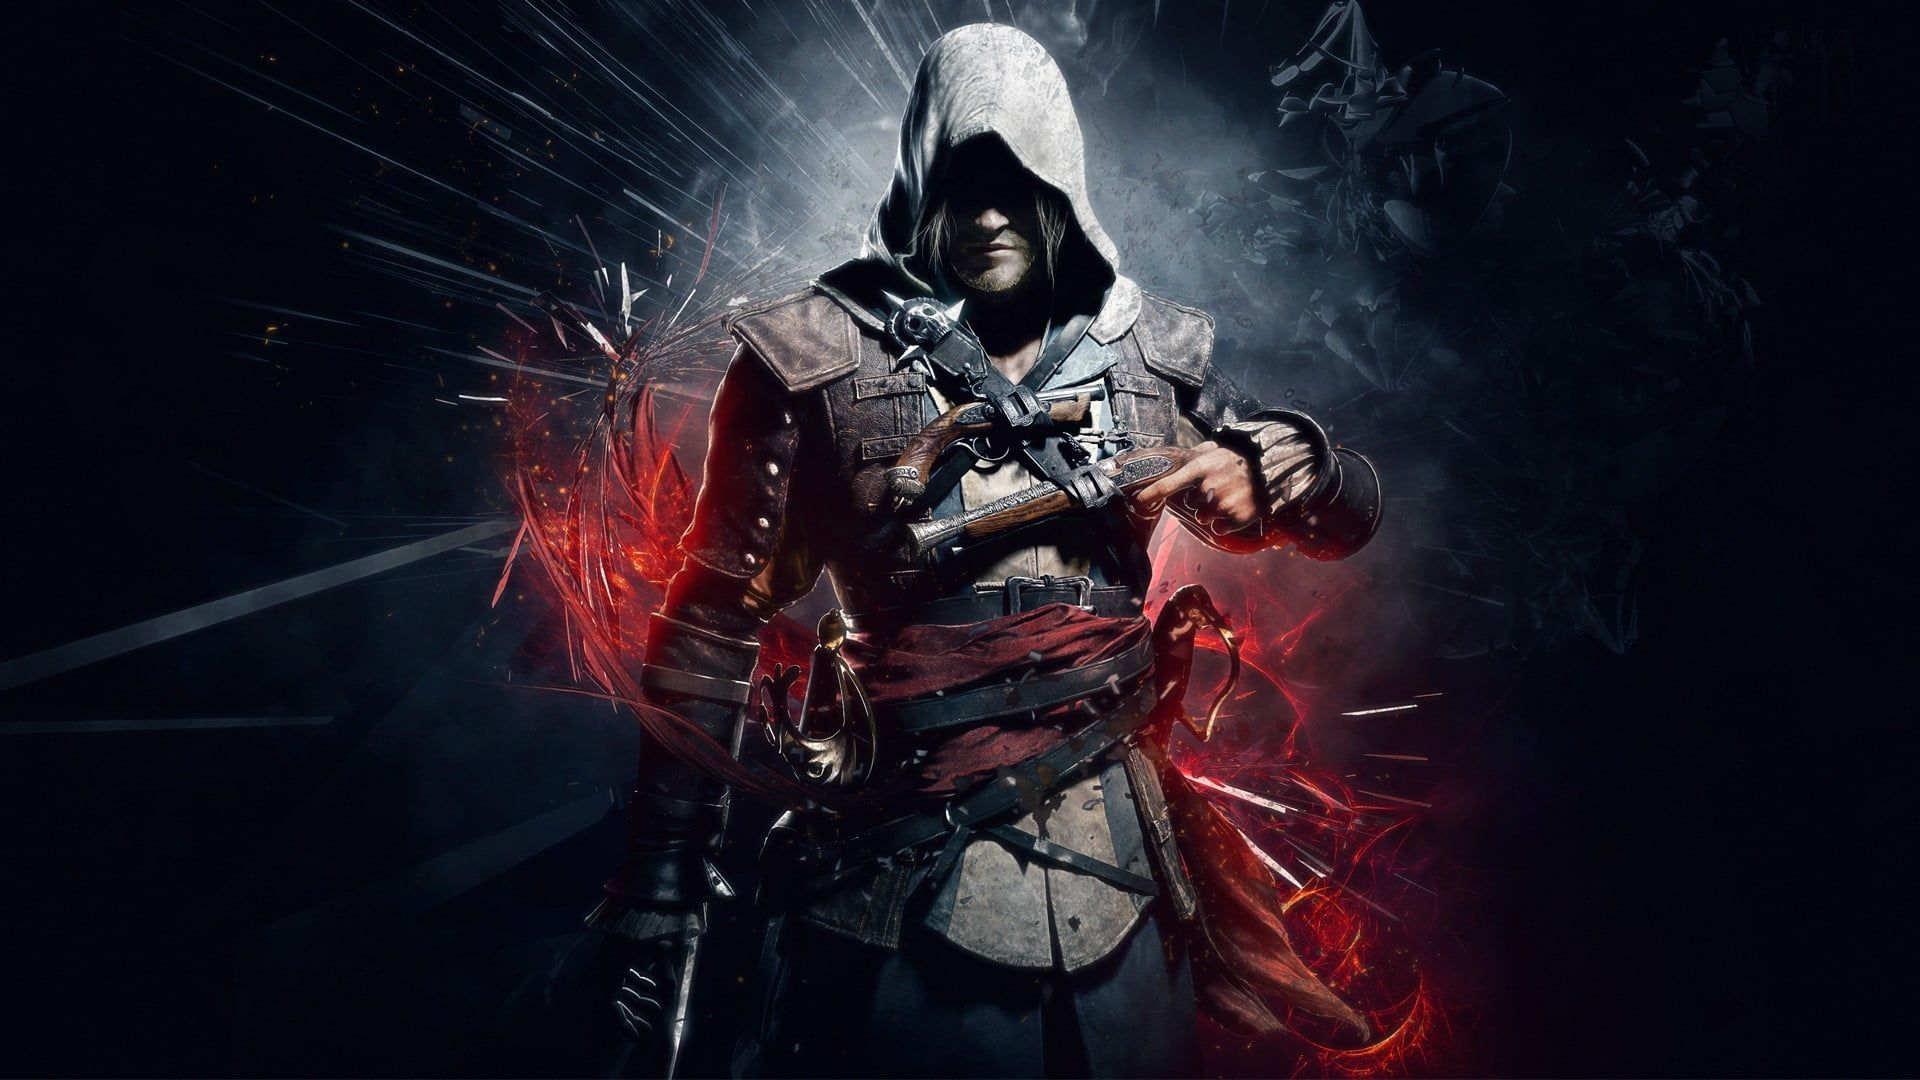 Assassin S Creed Wallpaper Video Games Playstation 4 Xbox One Playstation 3 Xbox Assas In 2020 Assassins Creed Black Flag Assassin S Creed Wallpaper Gaming Wallpapers